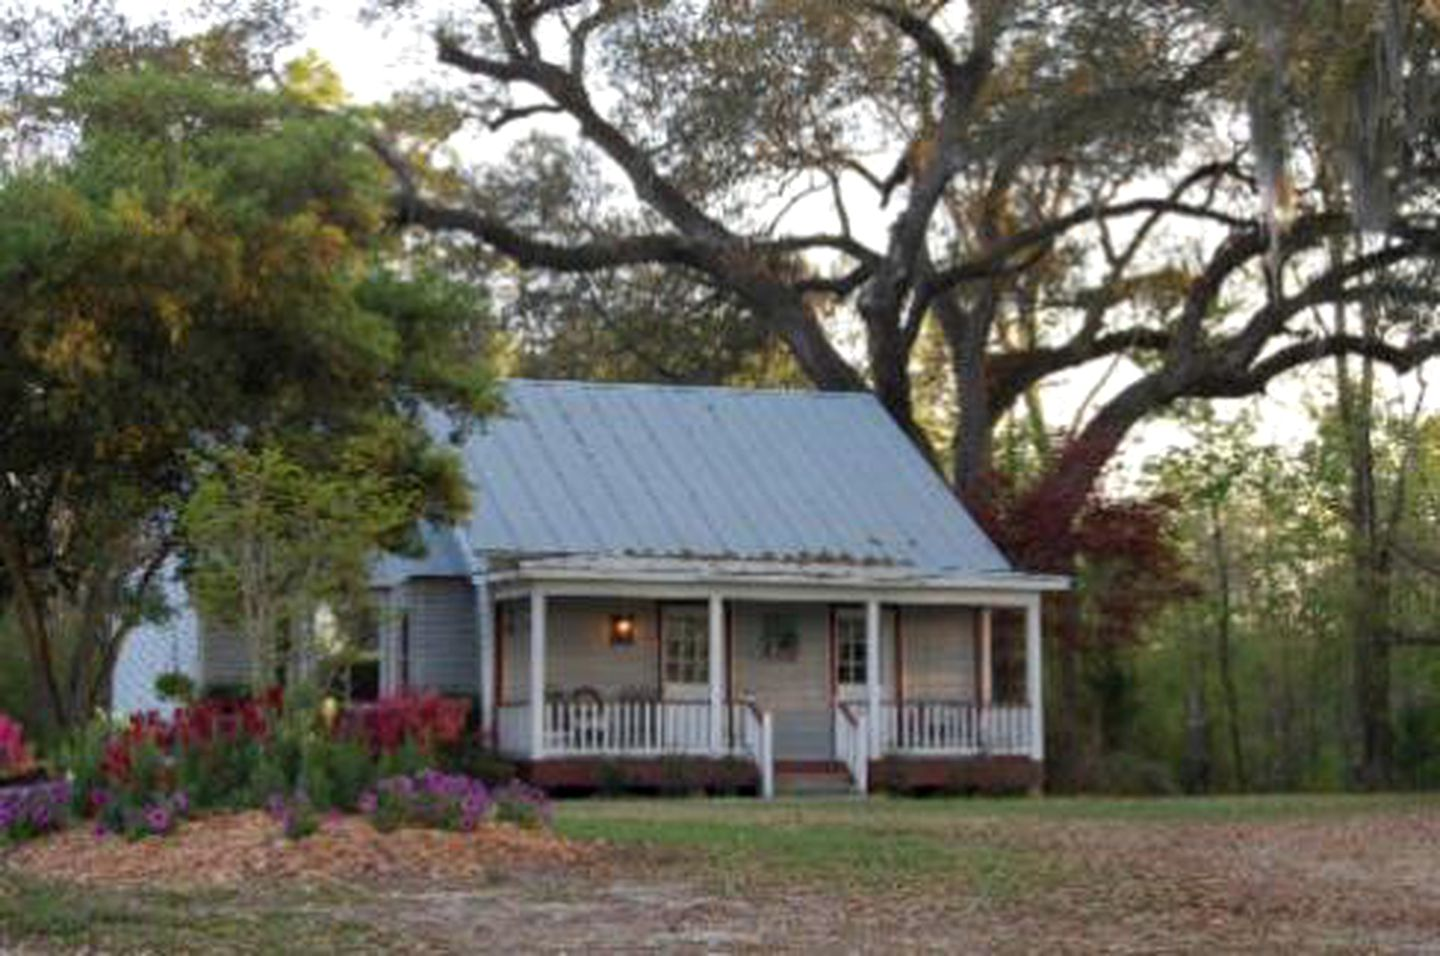 Cottages (Breaux Bridge, Louisiana, United States)